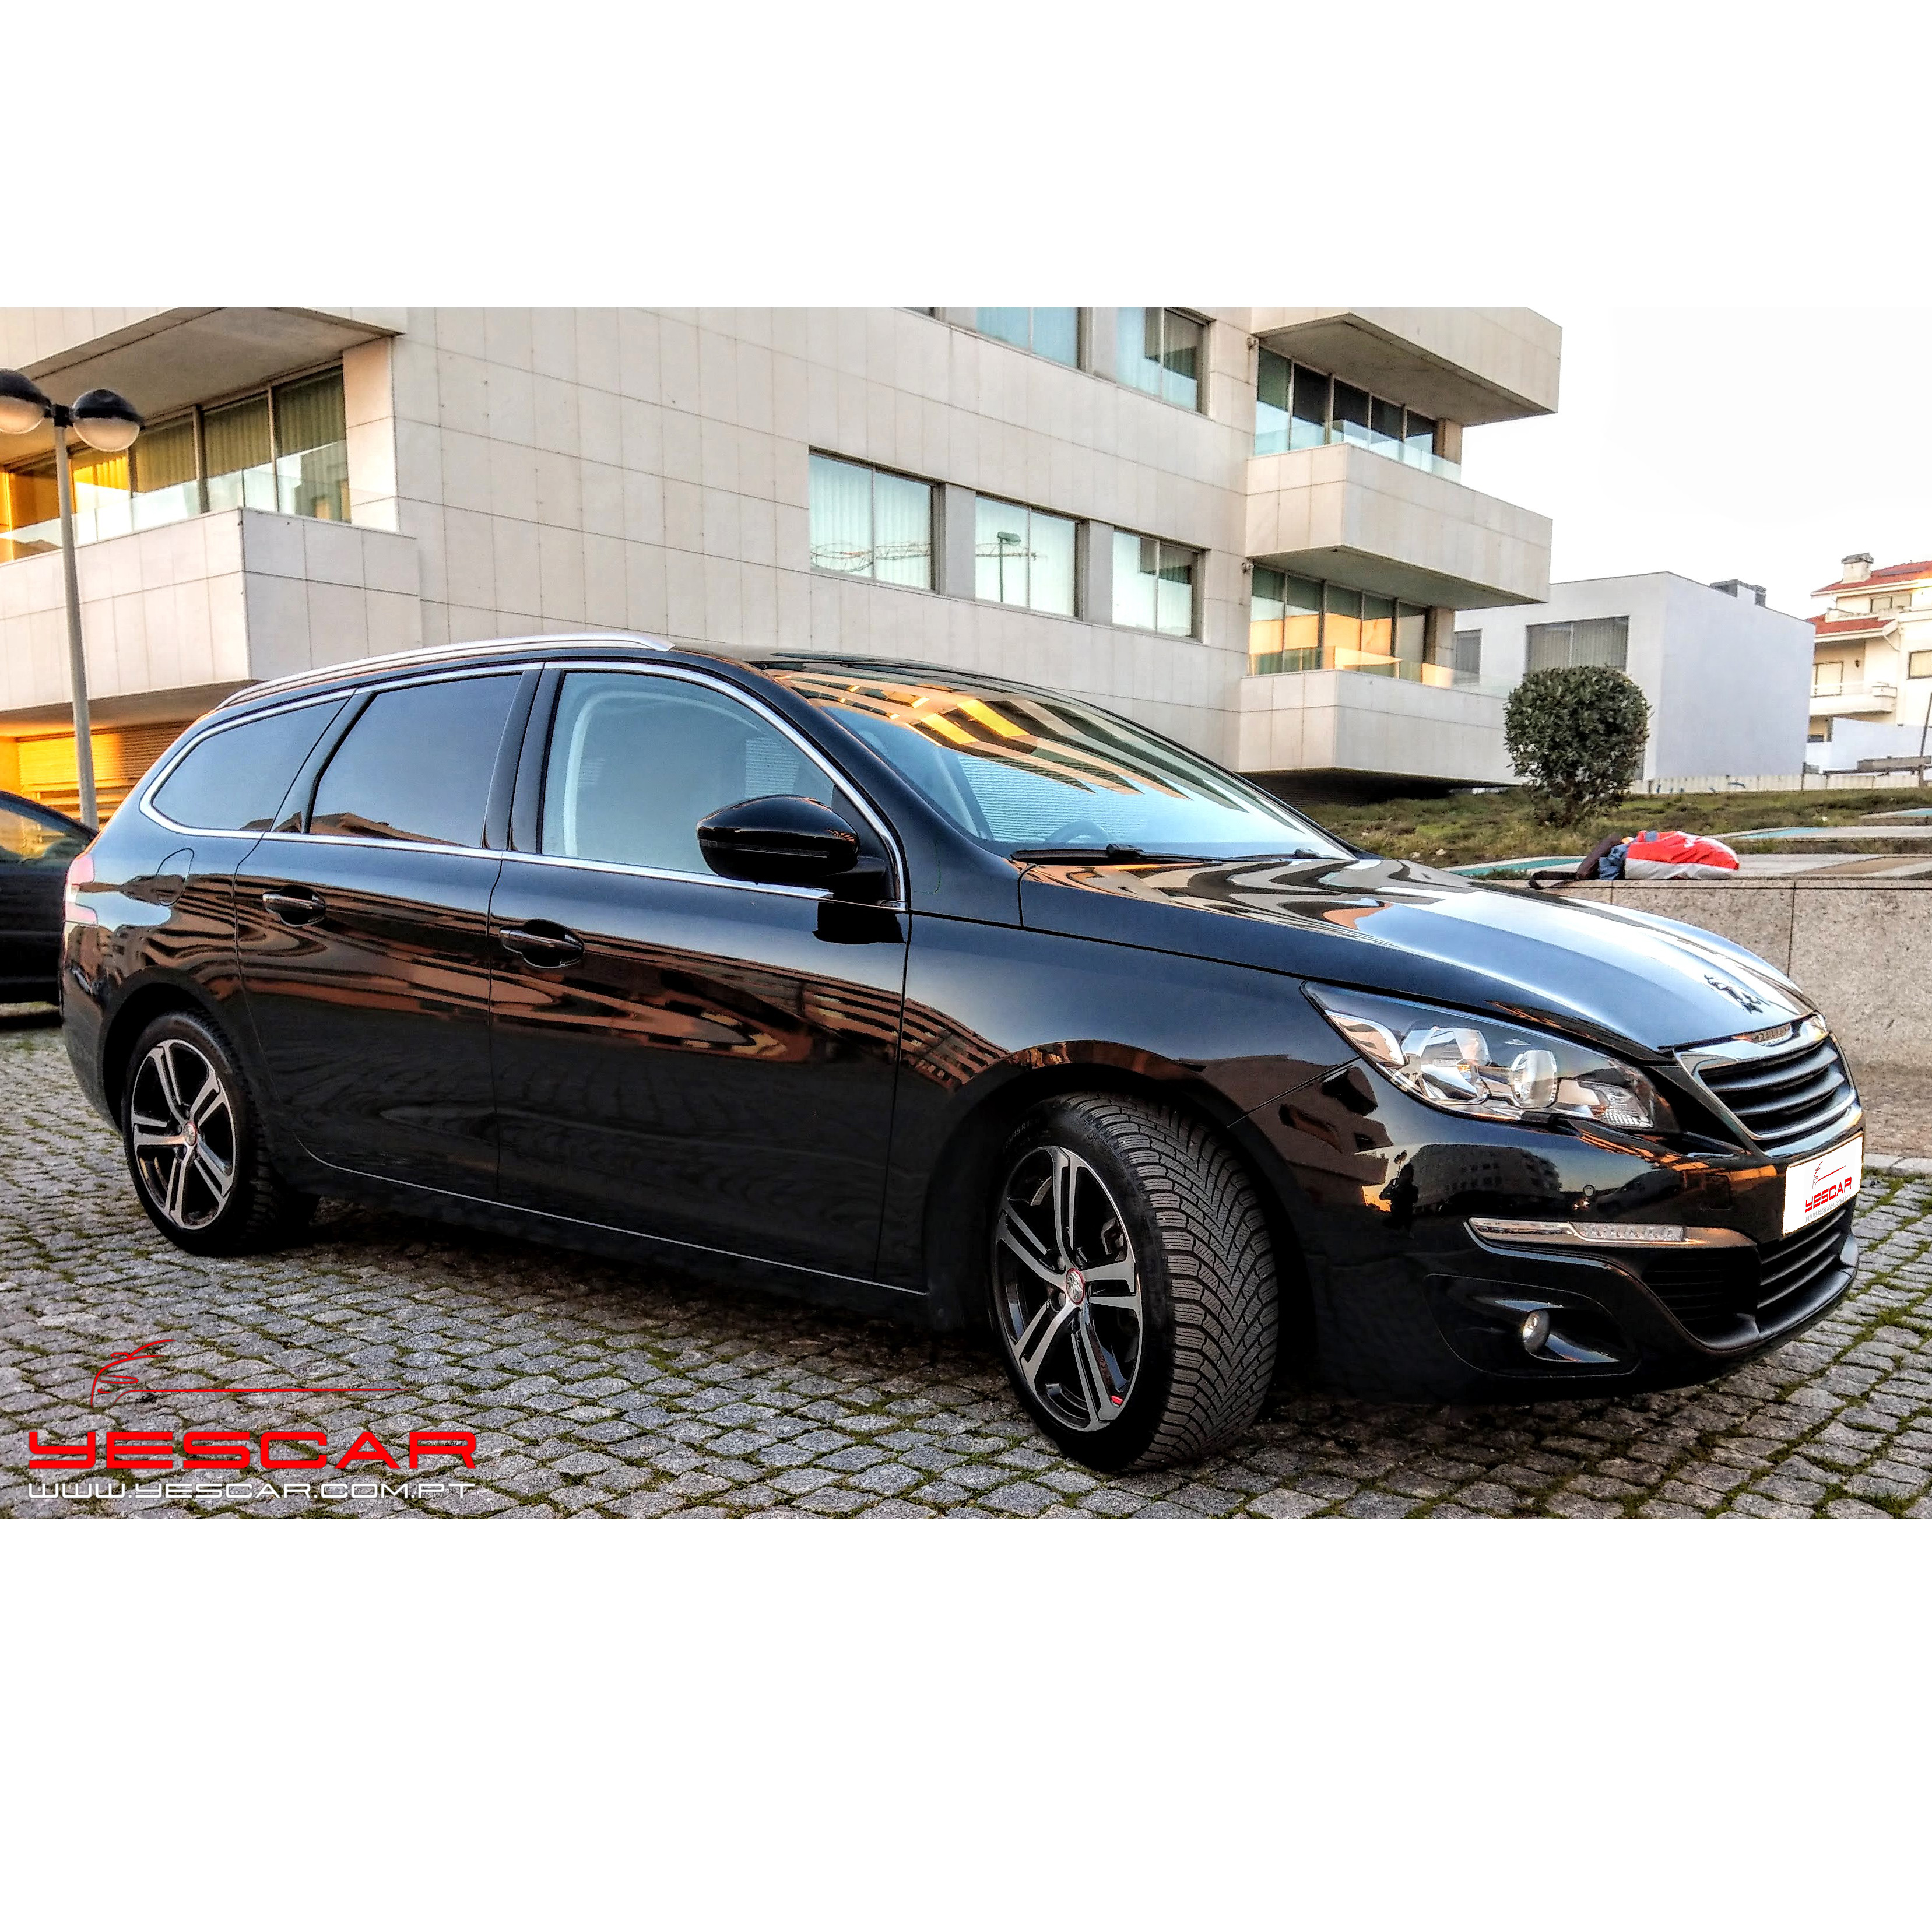 Peugeot_308SW_blueHDI_Yescar_automoveis (13)